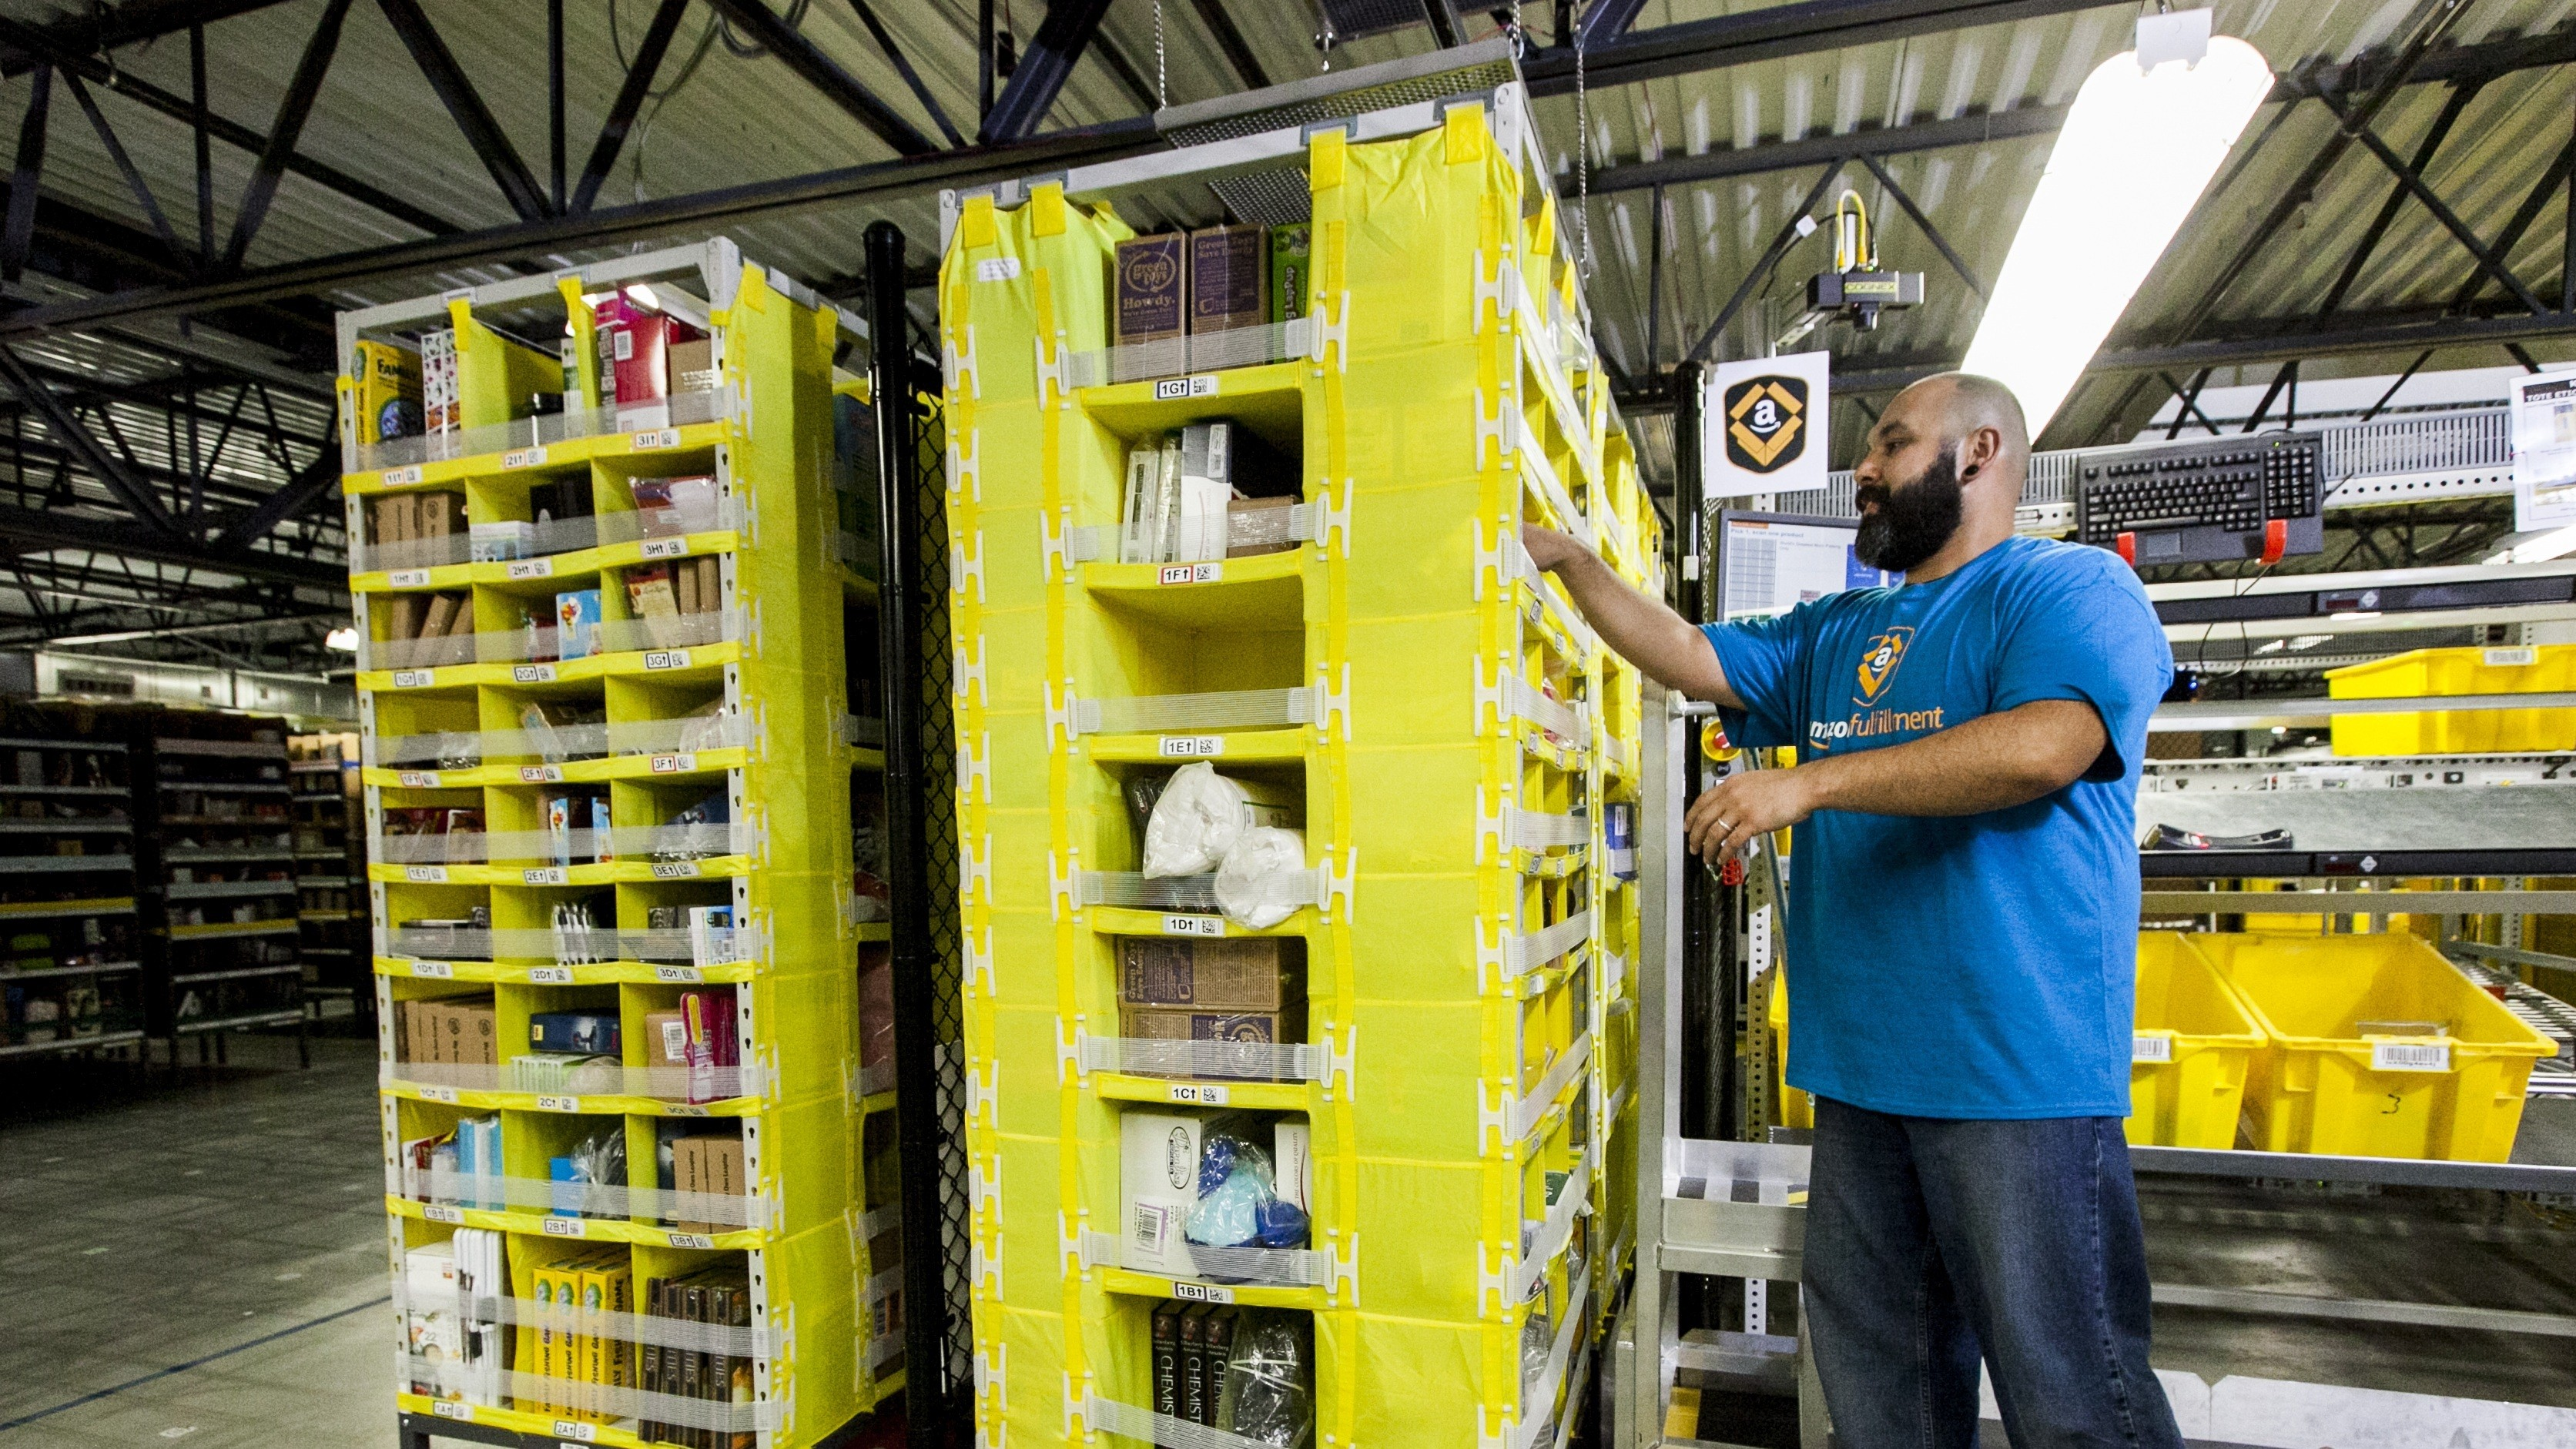 Amazon is hiring 100,000 new workers in the US to deal with the coronavirus boom